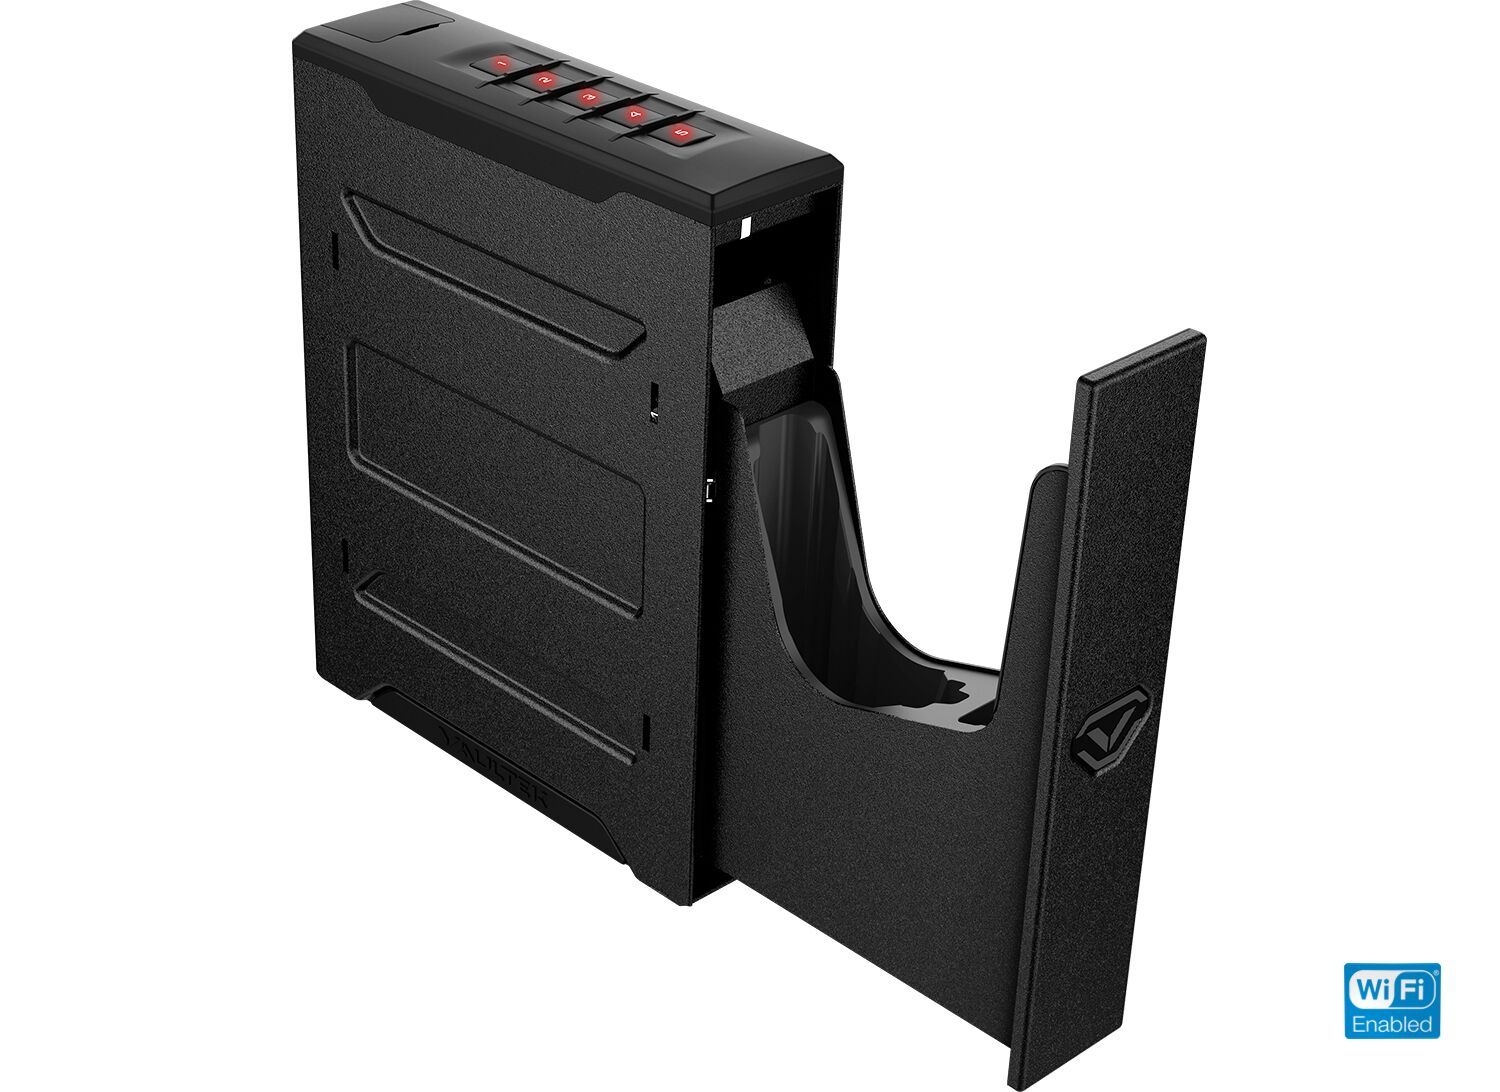 Handgun And Pistol Safes - Vaultek NSL20 WiFi Full-Size Rugged Slider Pistol Safe